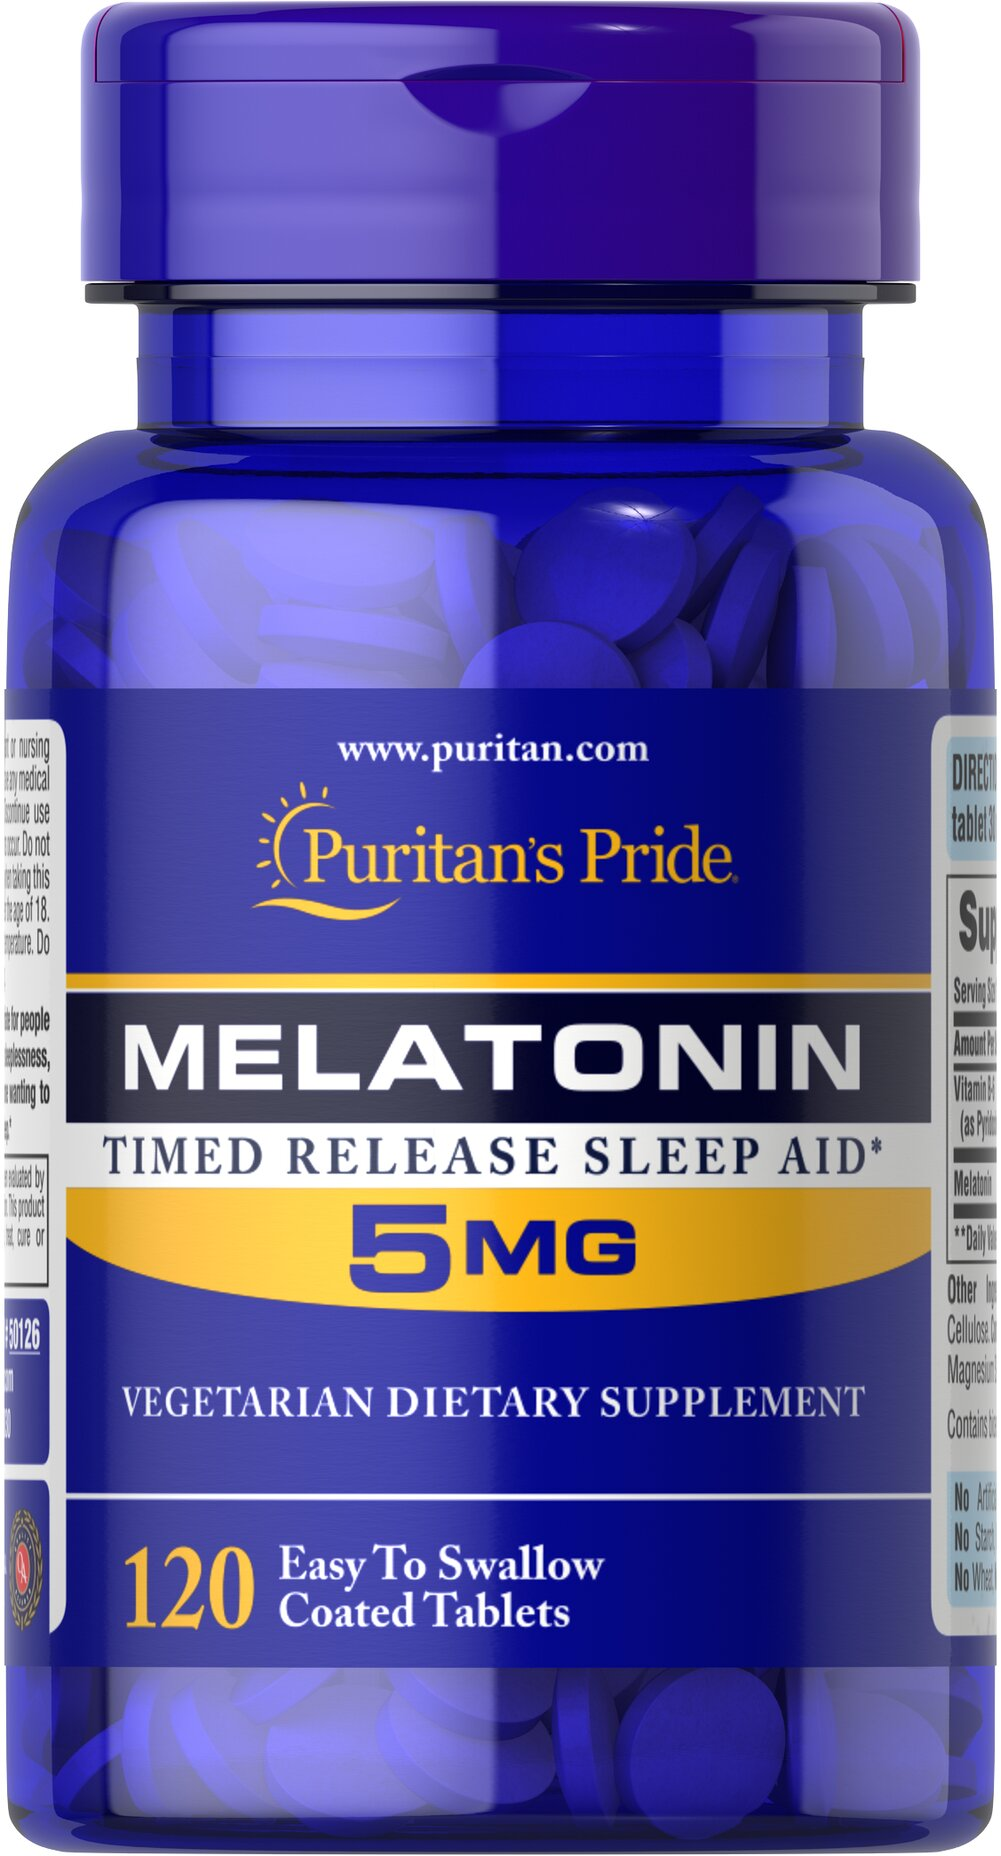 Melatonin 5 mg Timed Release Thumbnail Alternate Bottle View